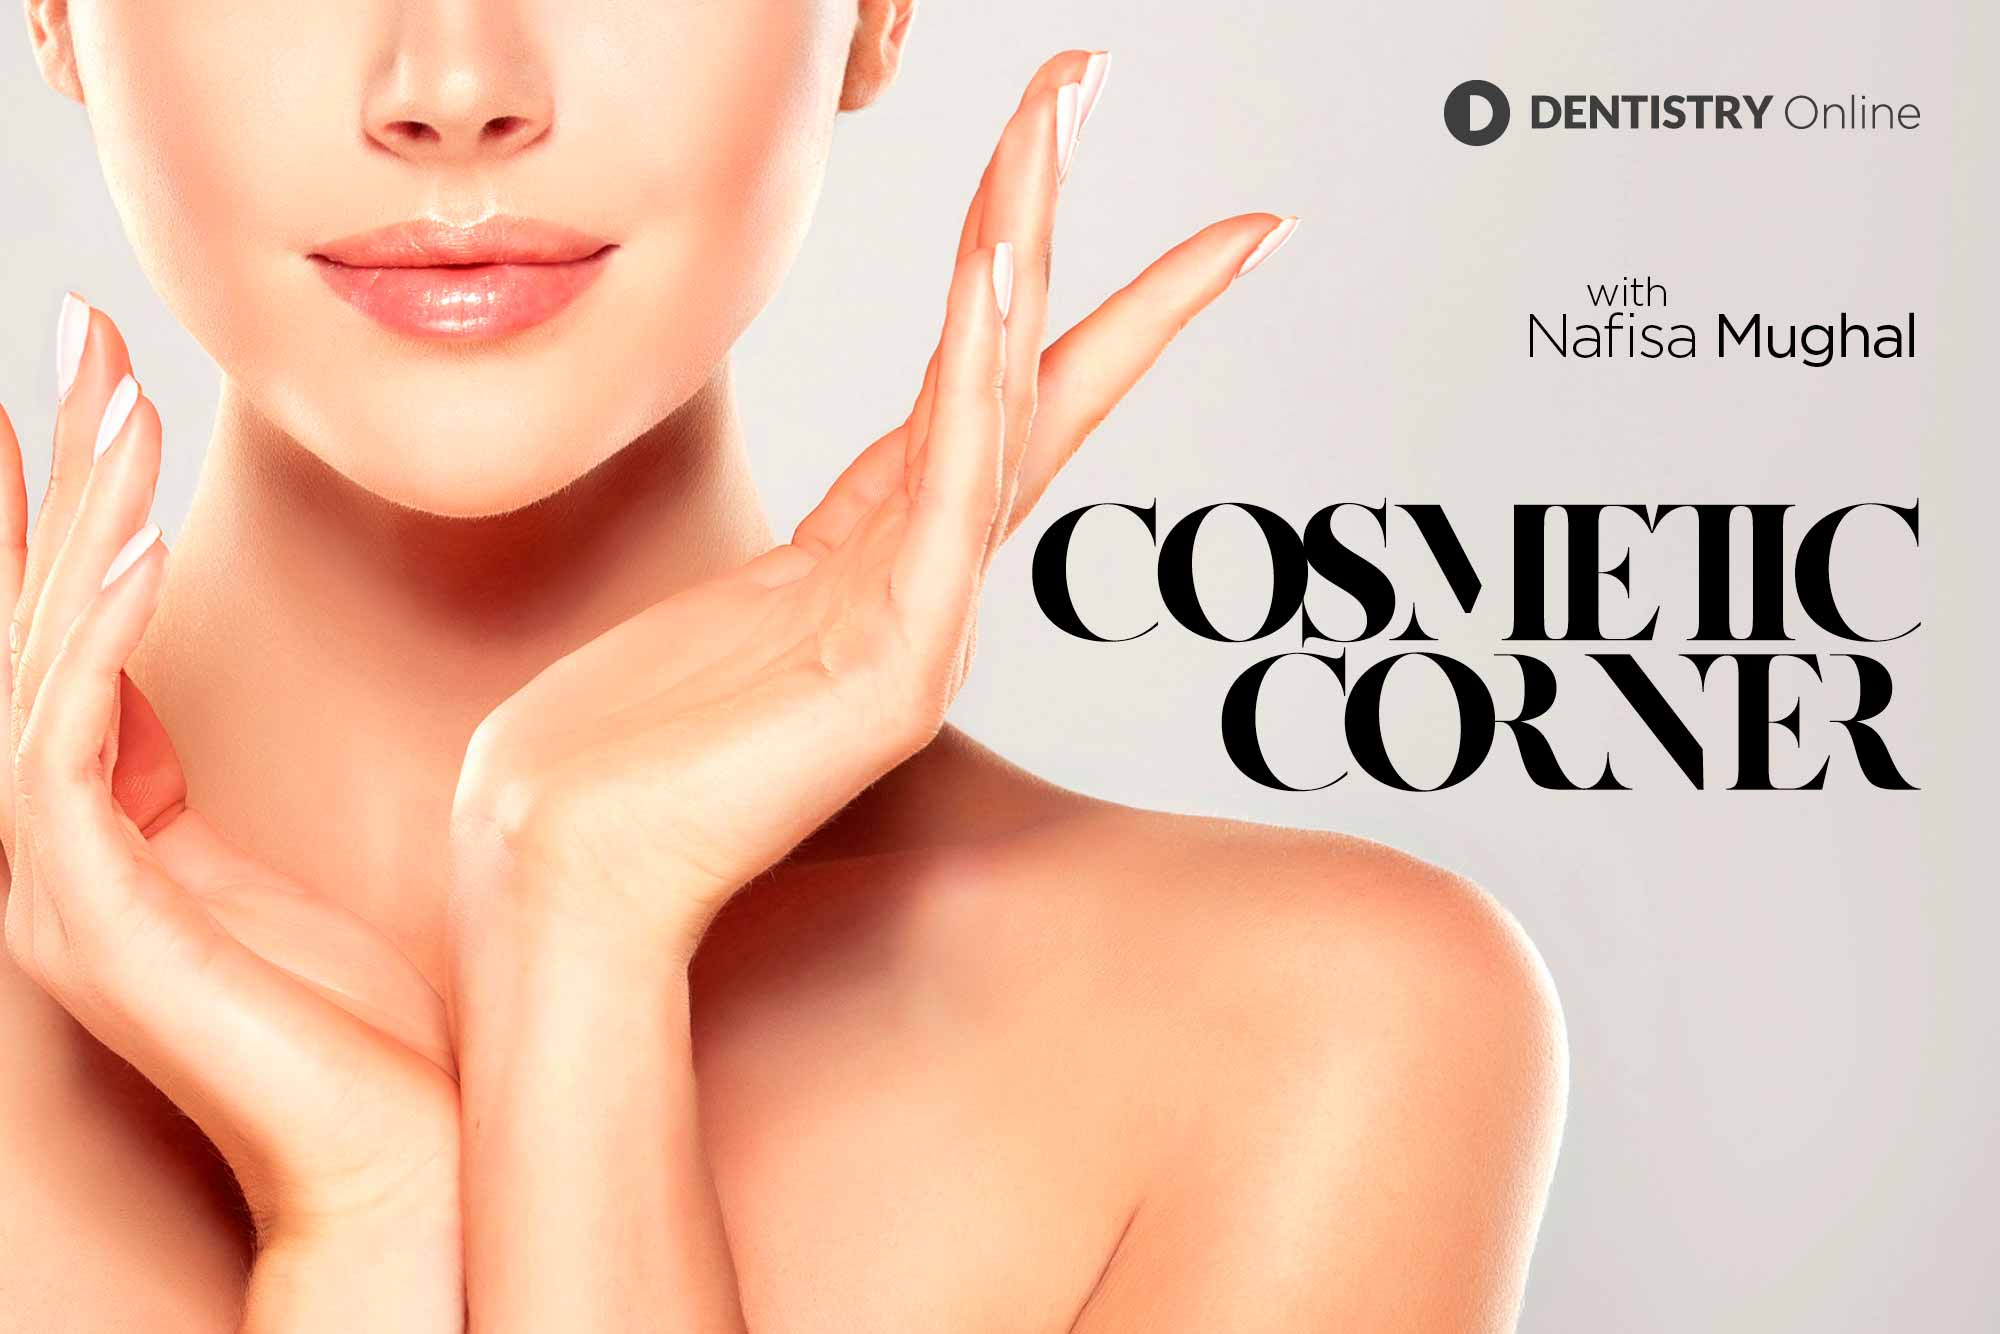 Cosmetic corner – facial aesthetics